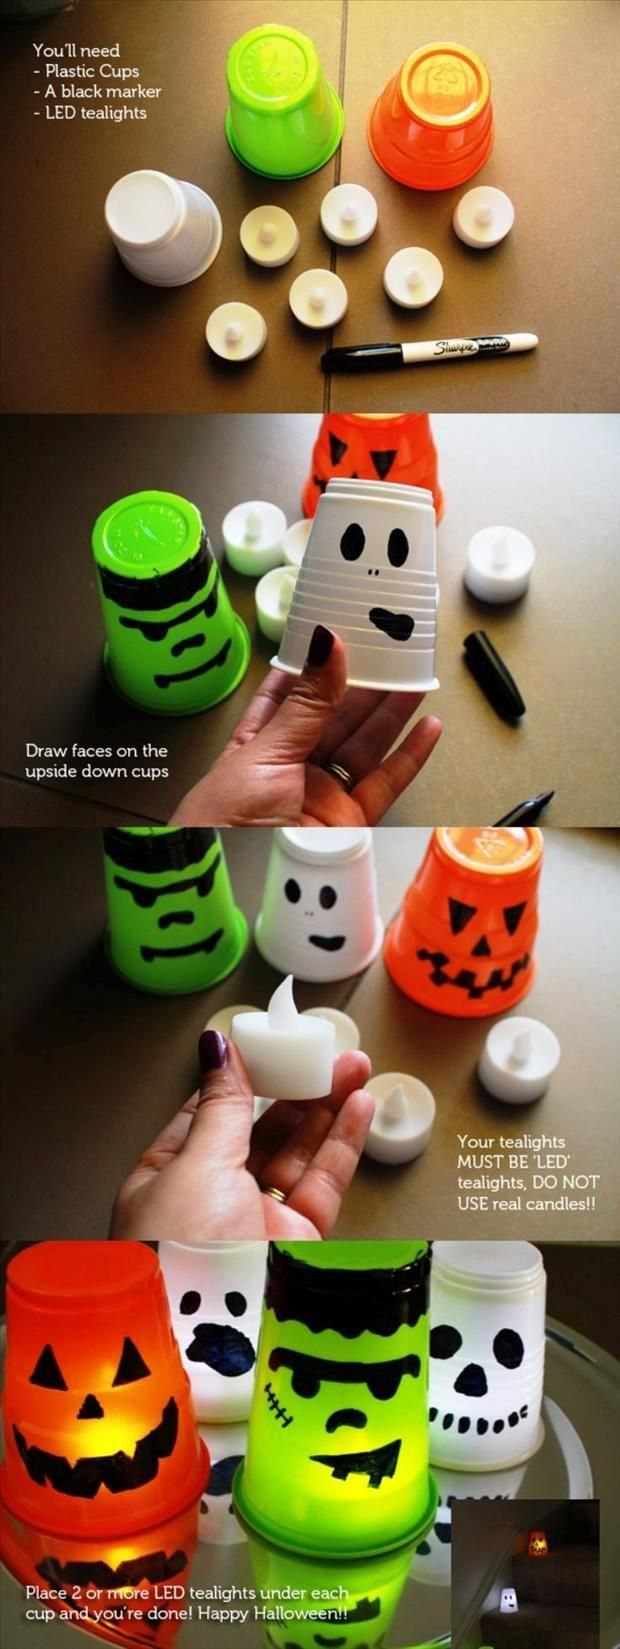 80 best Halloween images on Pinterest Halloween decorations, Male - How To Make Halloween Decorations